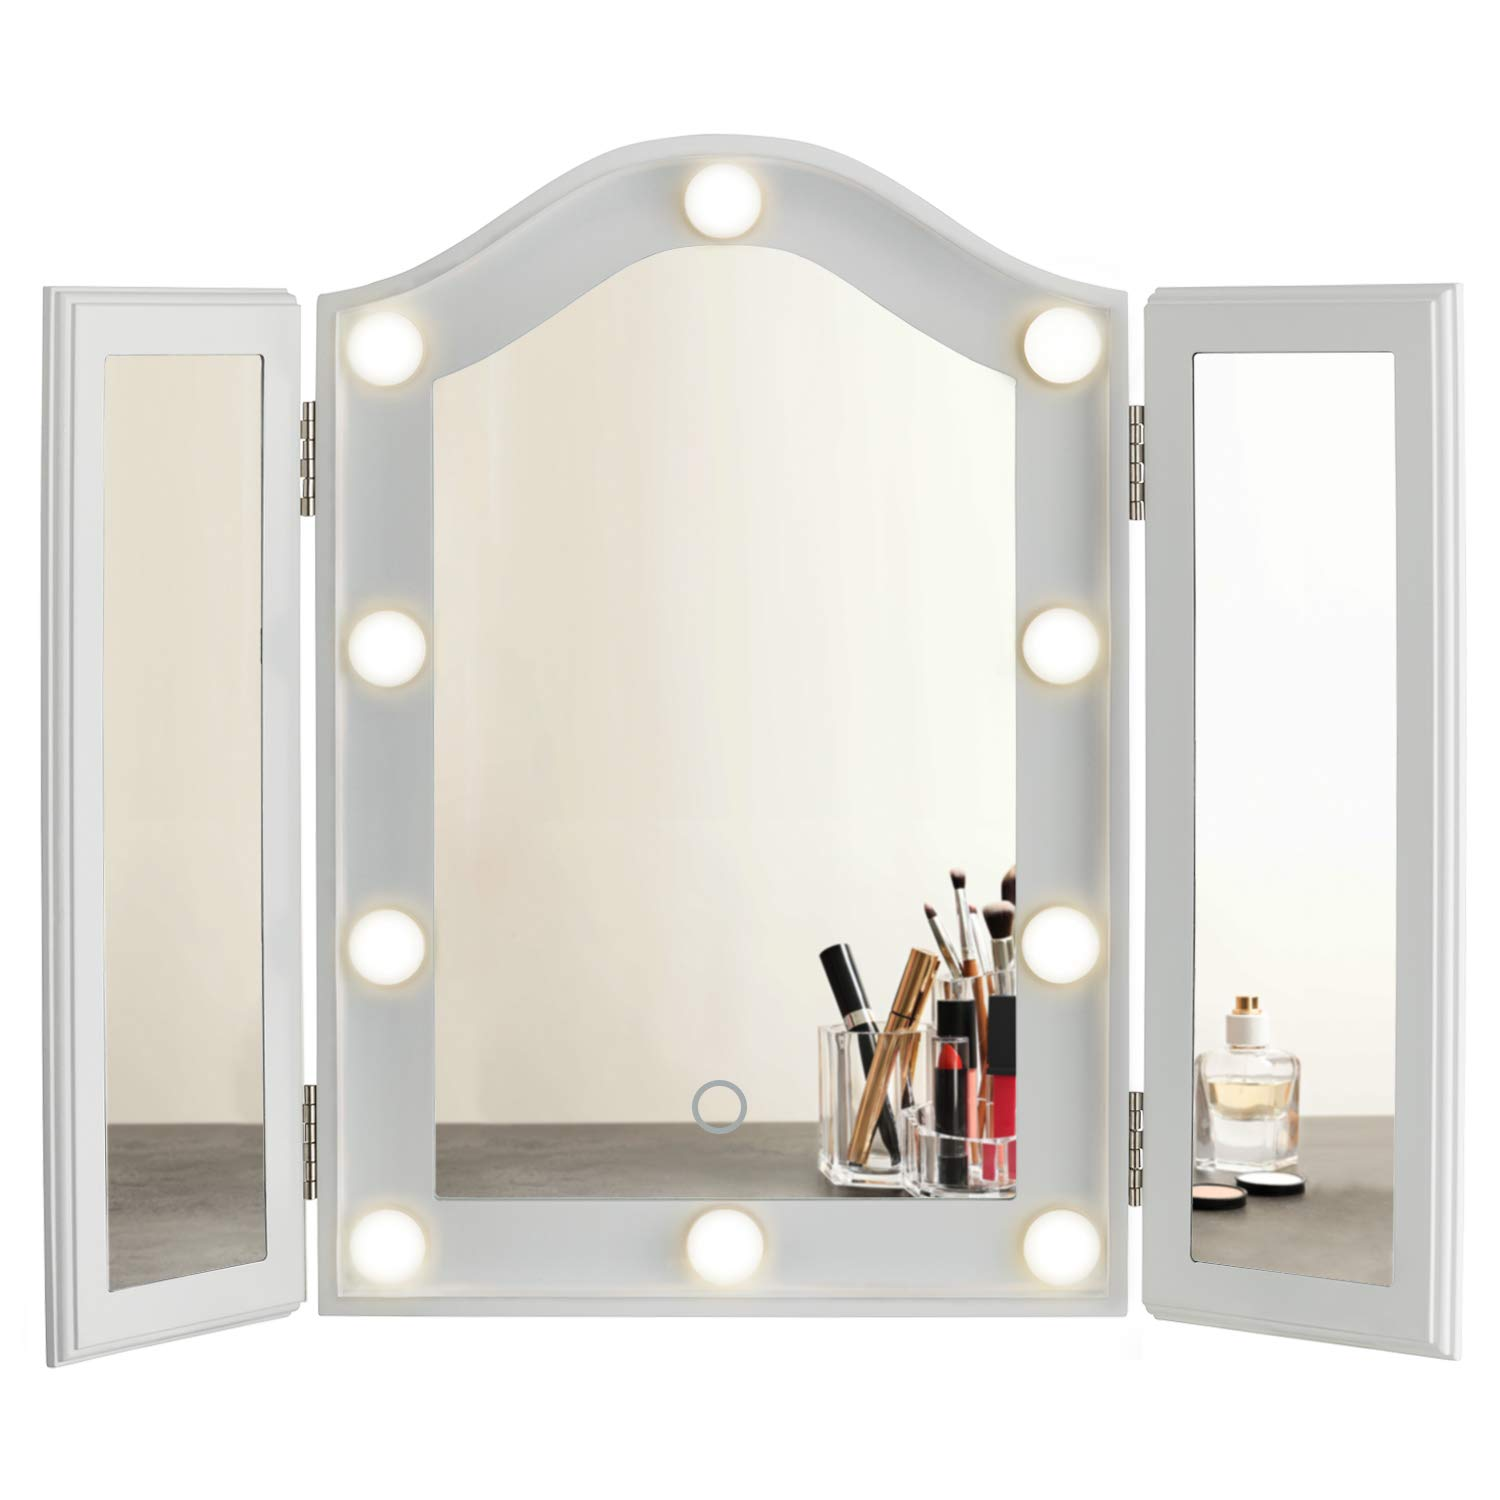 LUXFURNI Hollywood Tabletop Makeup Tri-fold Mirror with USB-Powered Dimmable Light Touch Control White